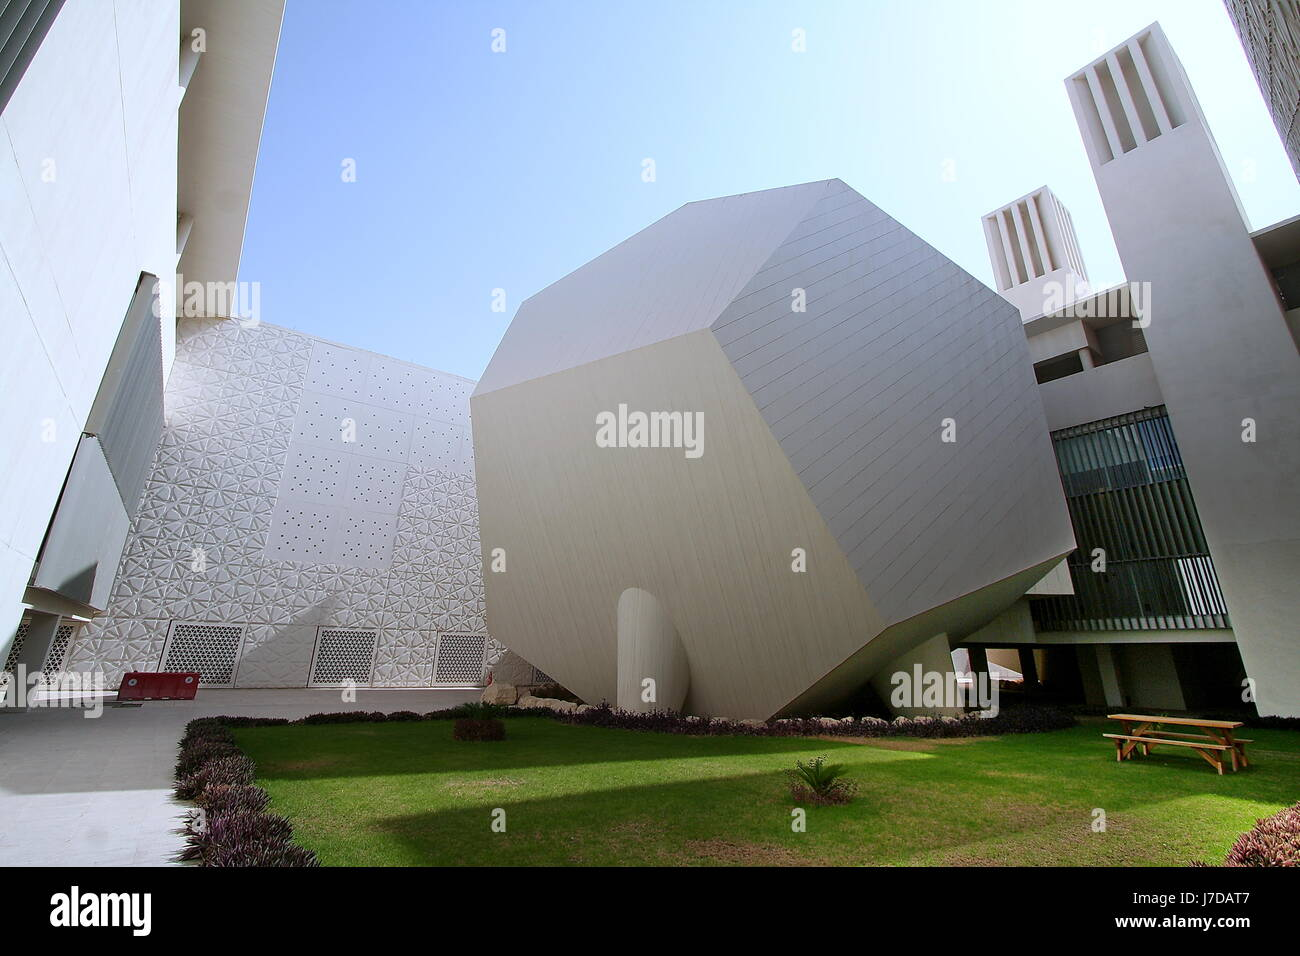 Courtyard With Icosahedron Lecture Hall Of Weill Cornell Medical College In Education City Doha Qatar